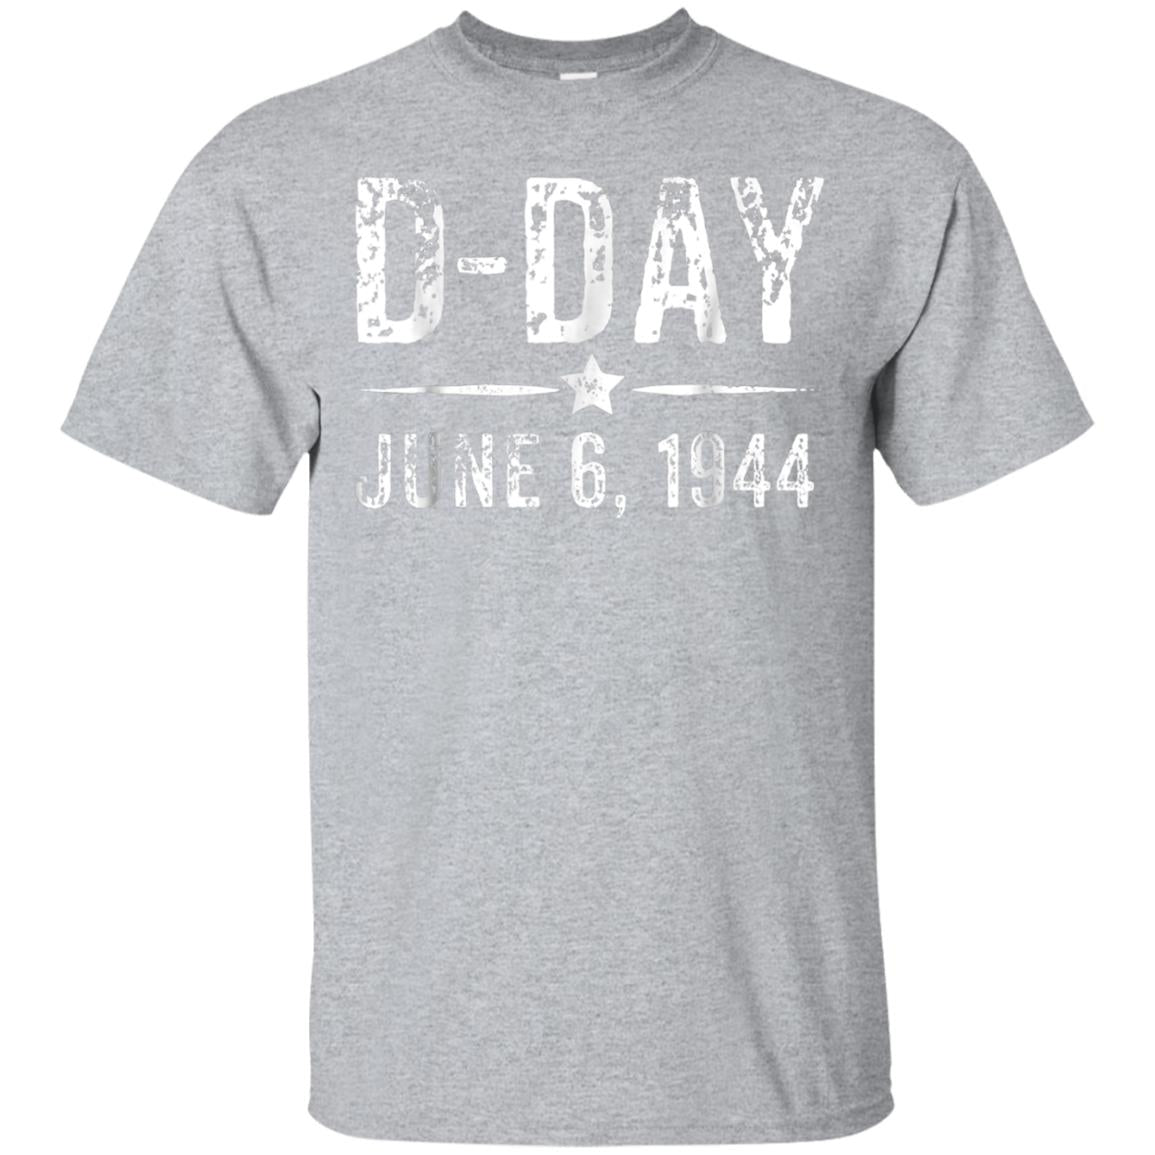 D-Day Shirt - Commemorative World War 2 T shirt 99promocode